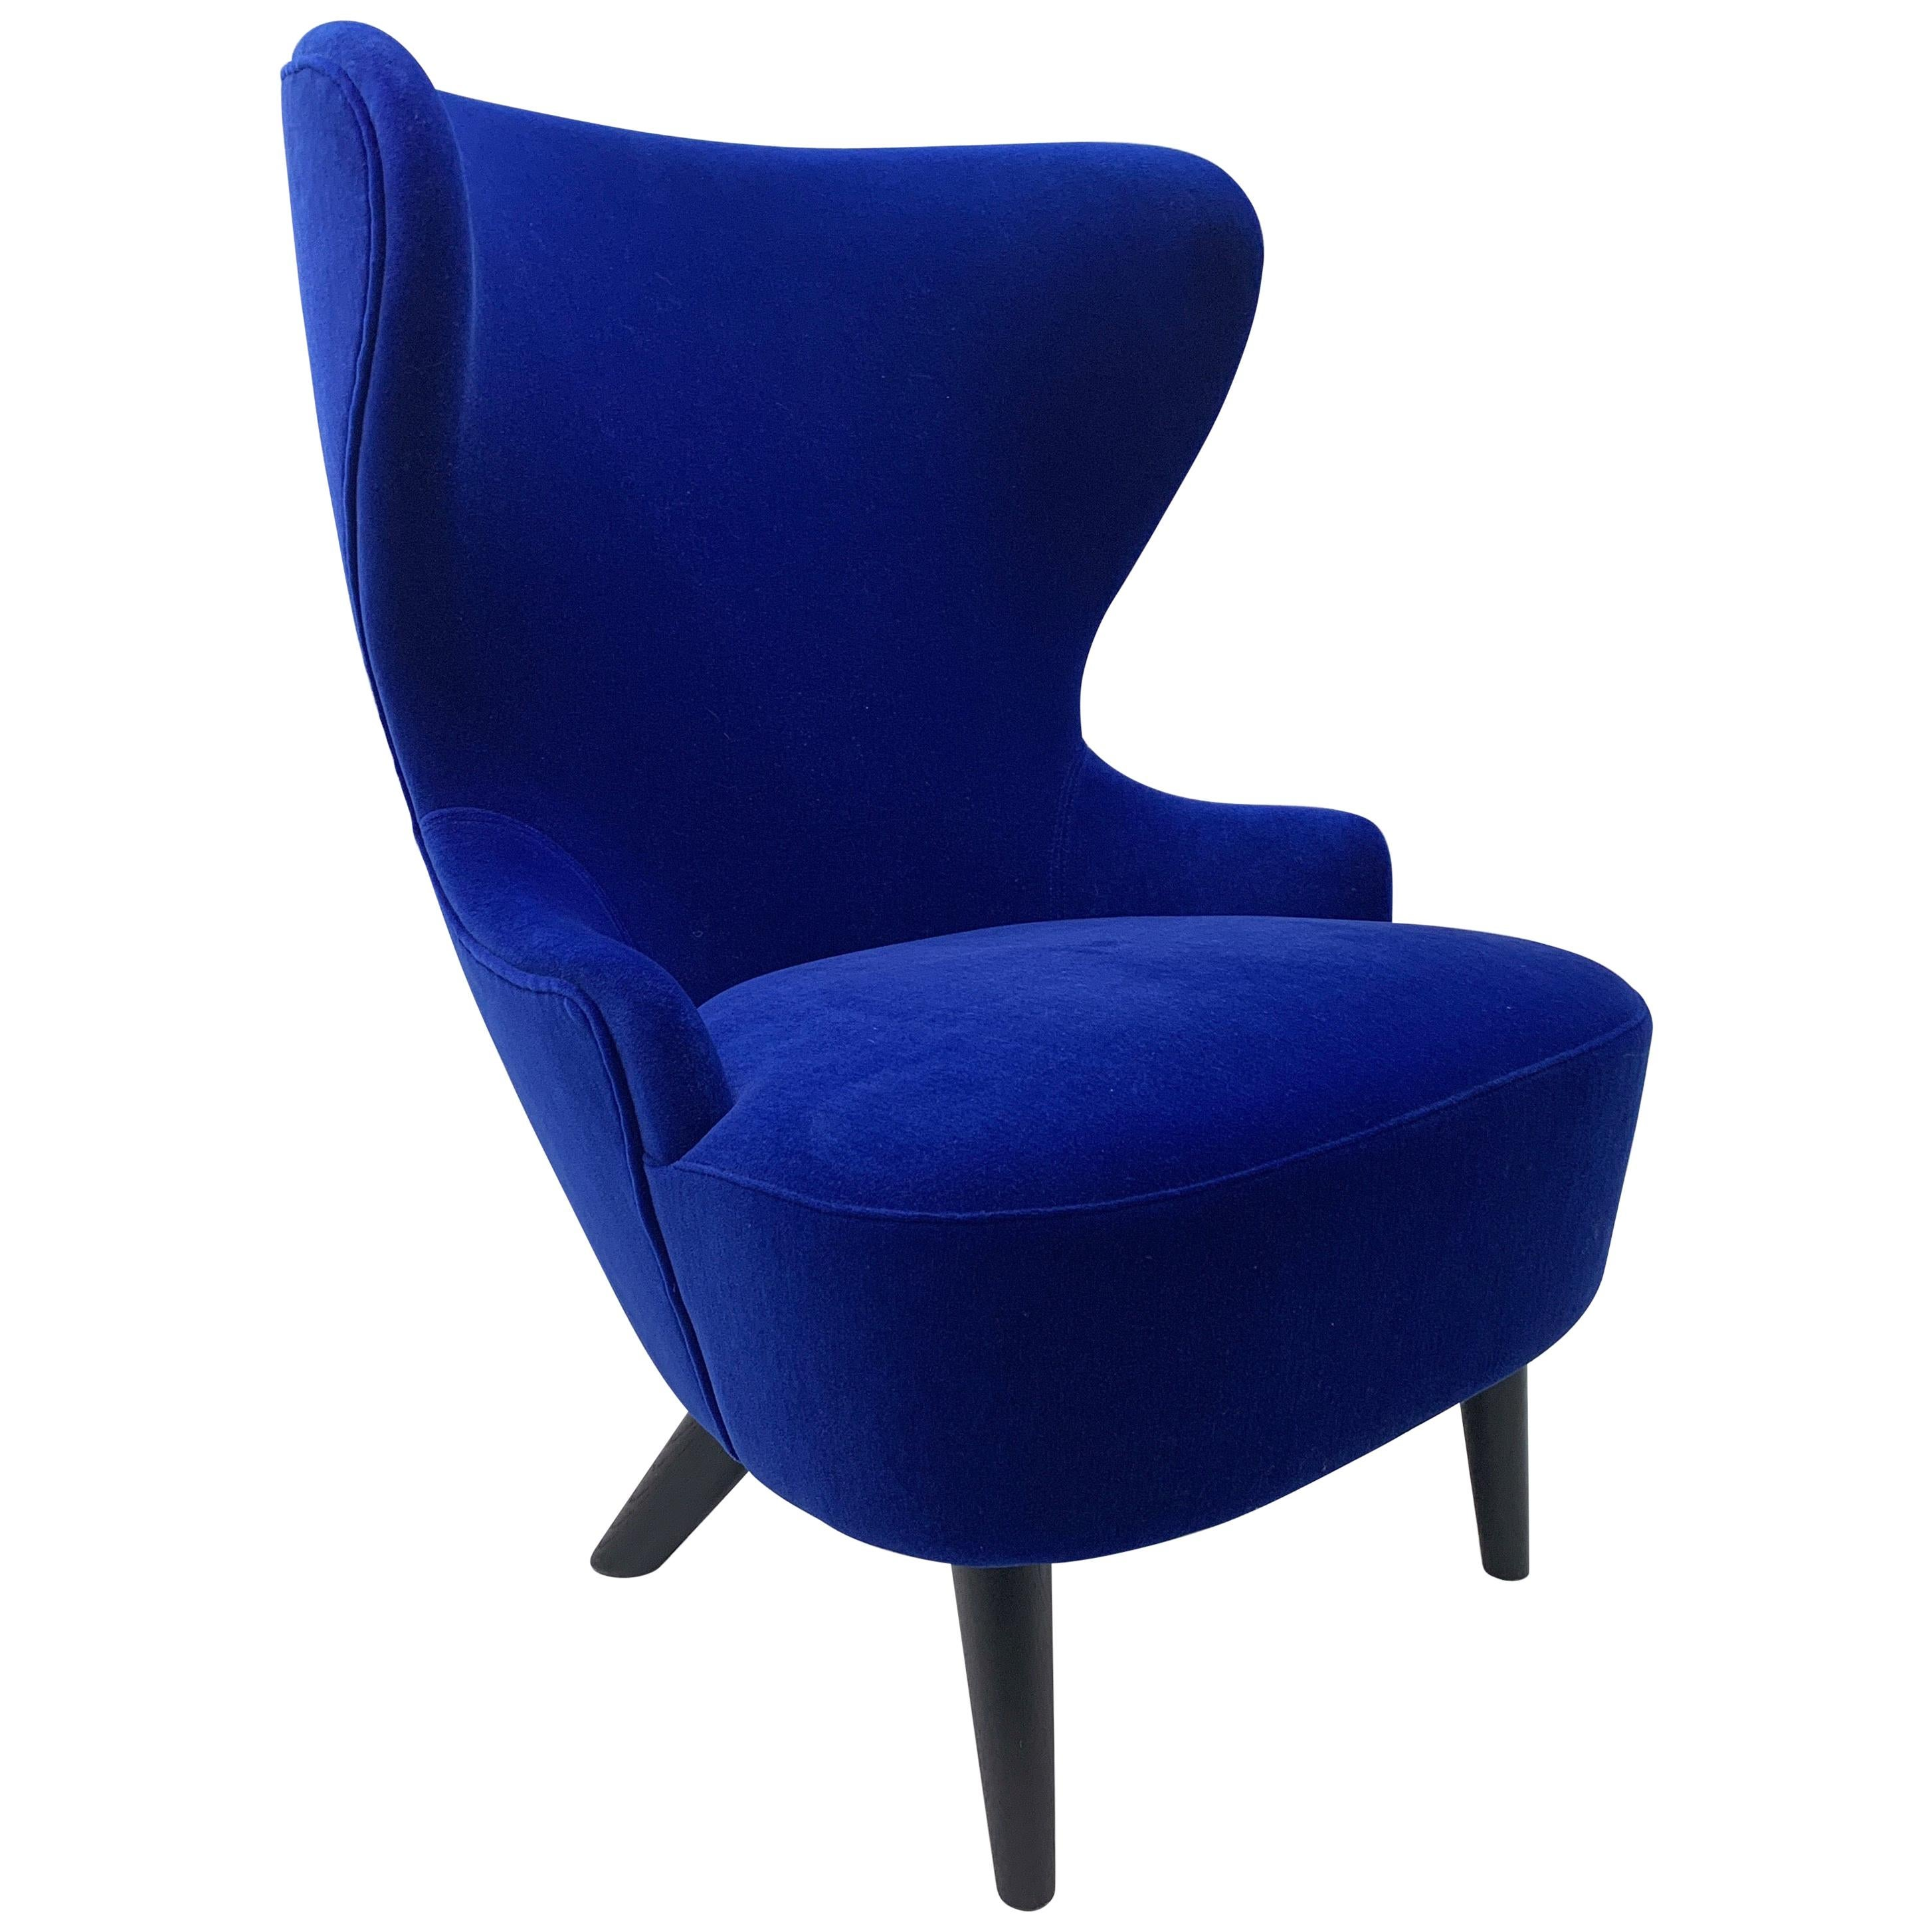 Groovy Tom Dixon Micro Wingback Chair At 1Stdibs Gmtry Best Dining Table And Chair Ideas Images Gmtryco